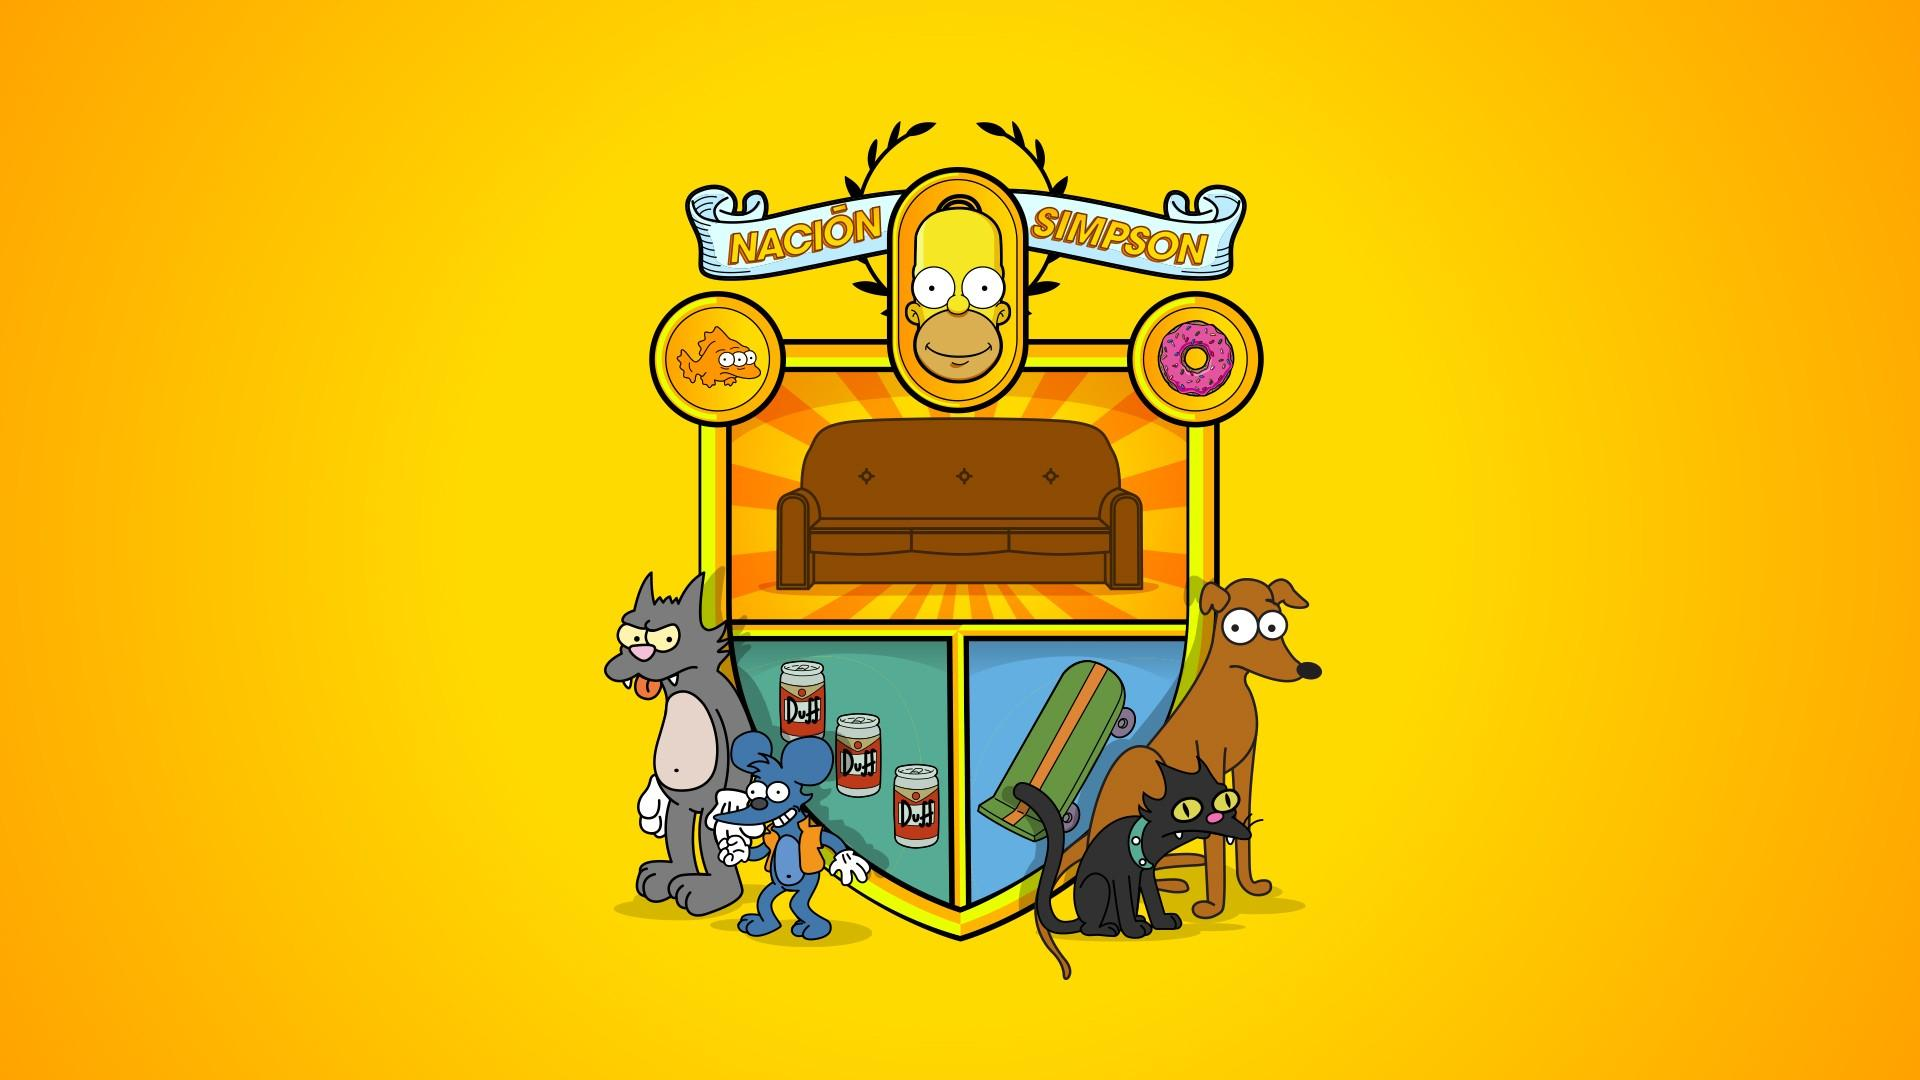 Image Result For The Simpsons Iphone Hd Wallpapers Cartoons Images Background Bart Simpson Skateboarding